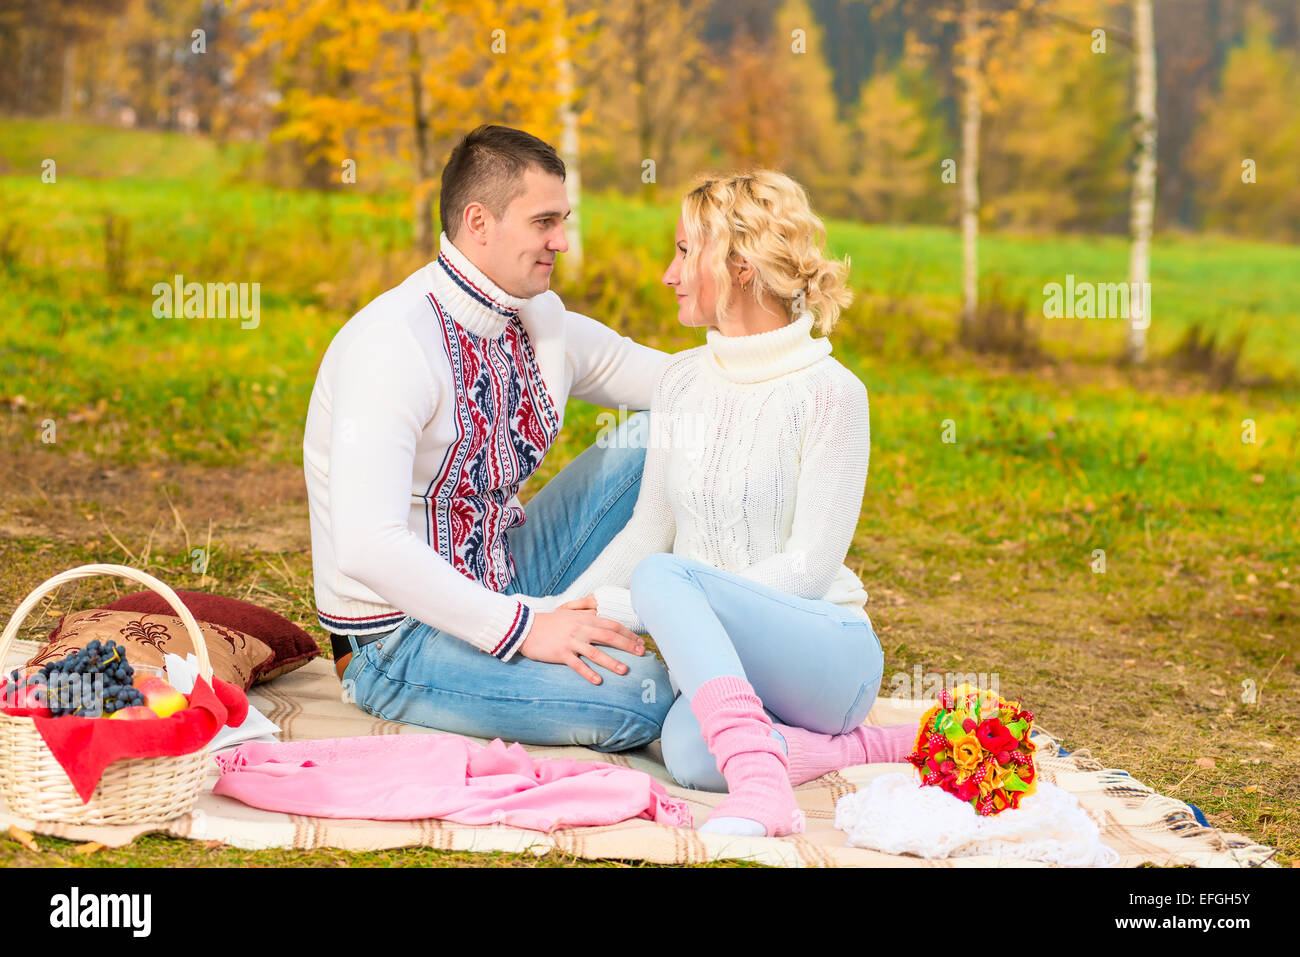 married couple looking into each other's eyes in the park - Stock Image